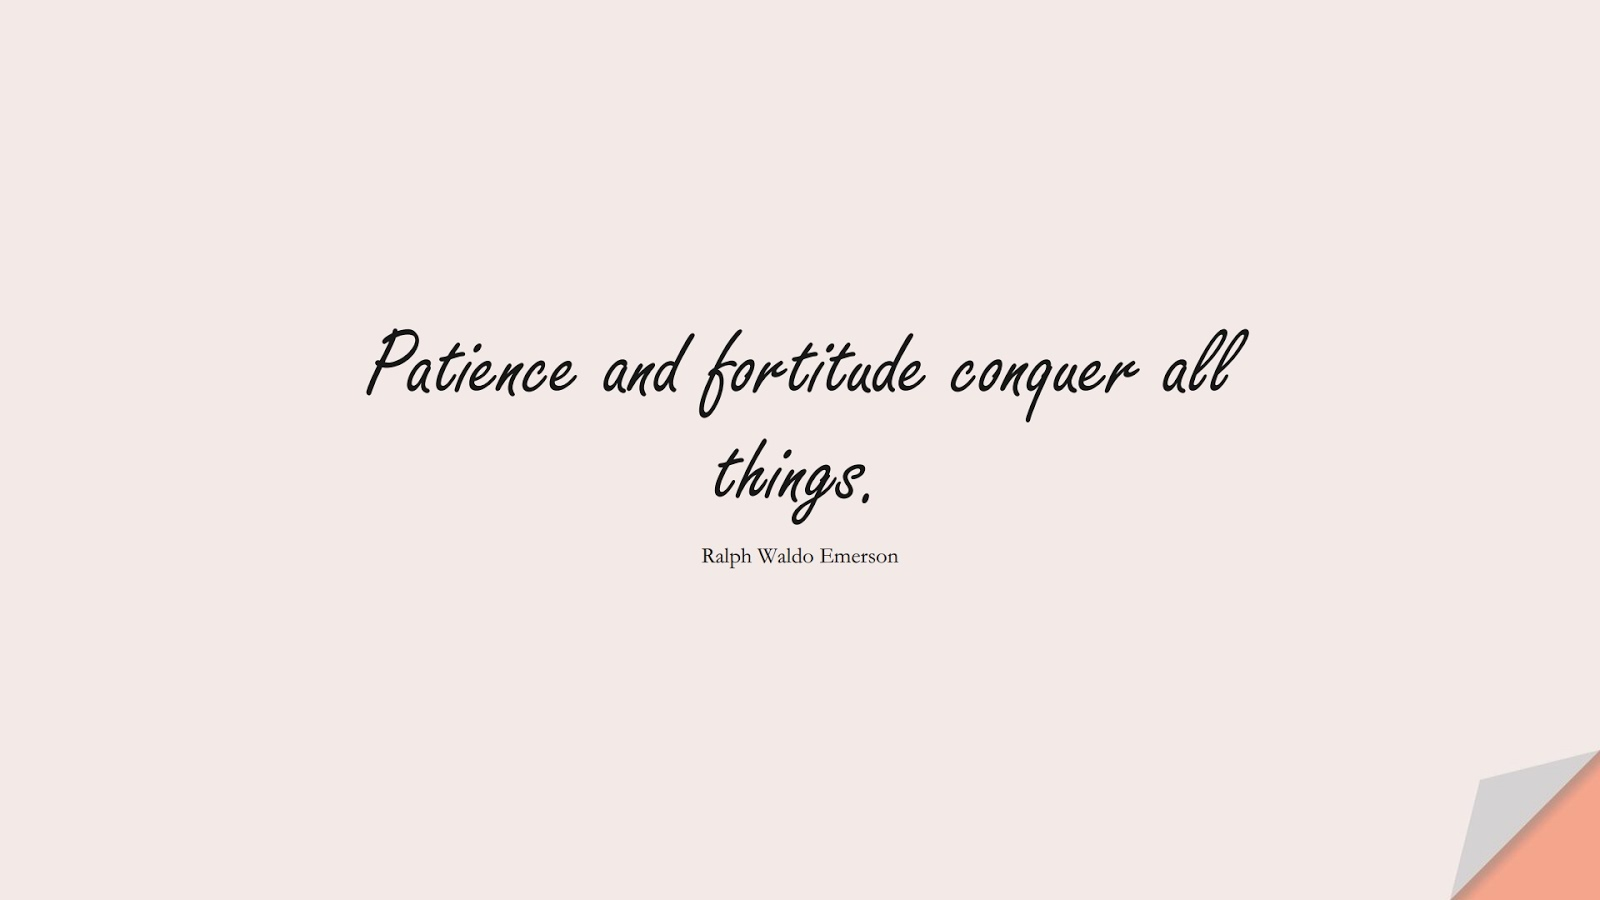 Patience and fortitude conquer all things. (Ralph Waldo Emerson);  #HopeQuotes